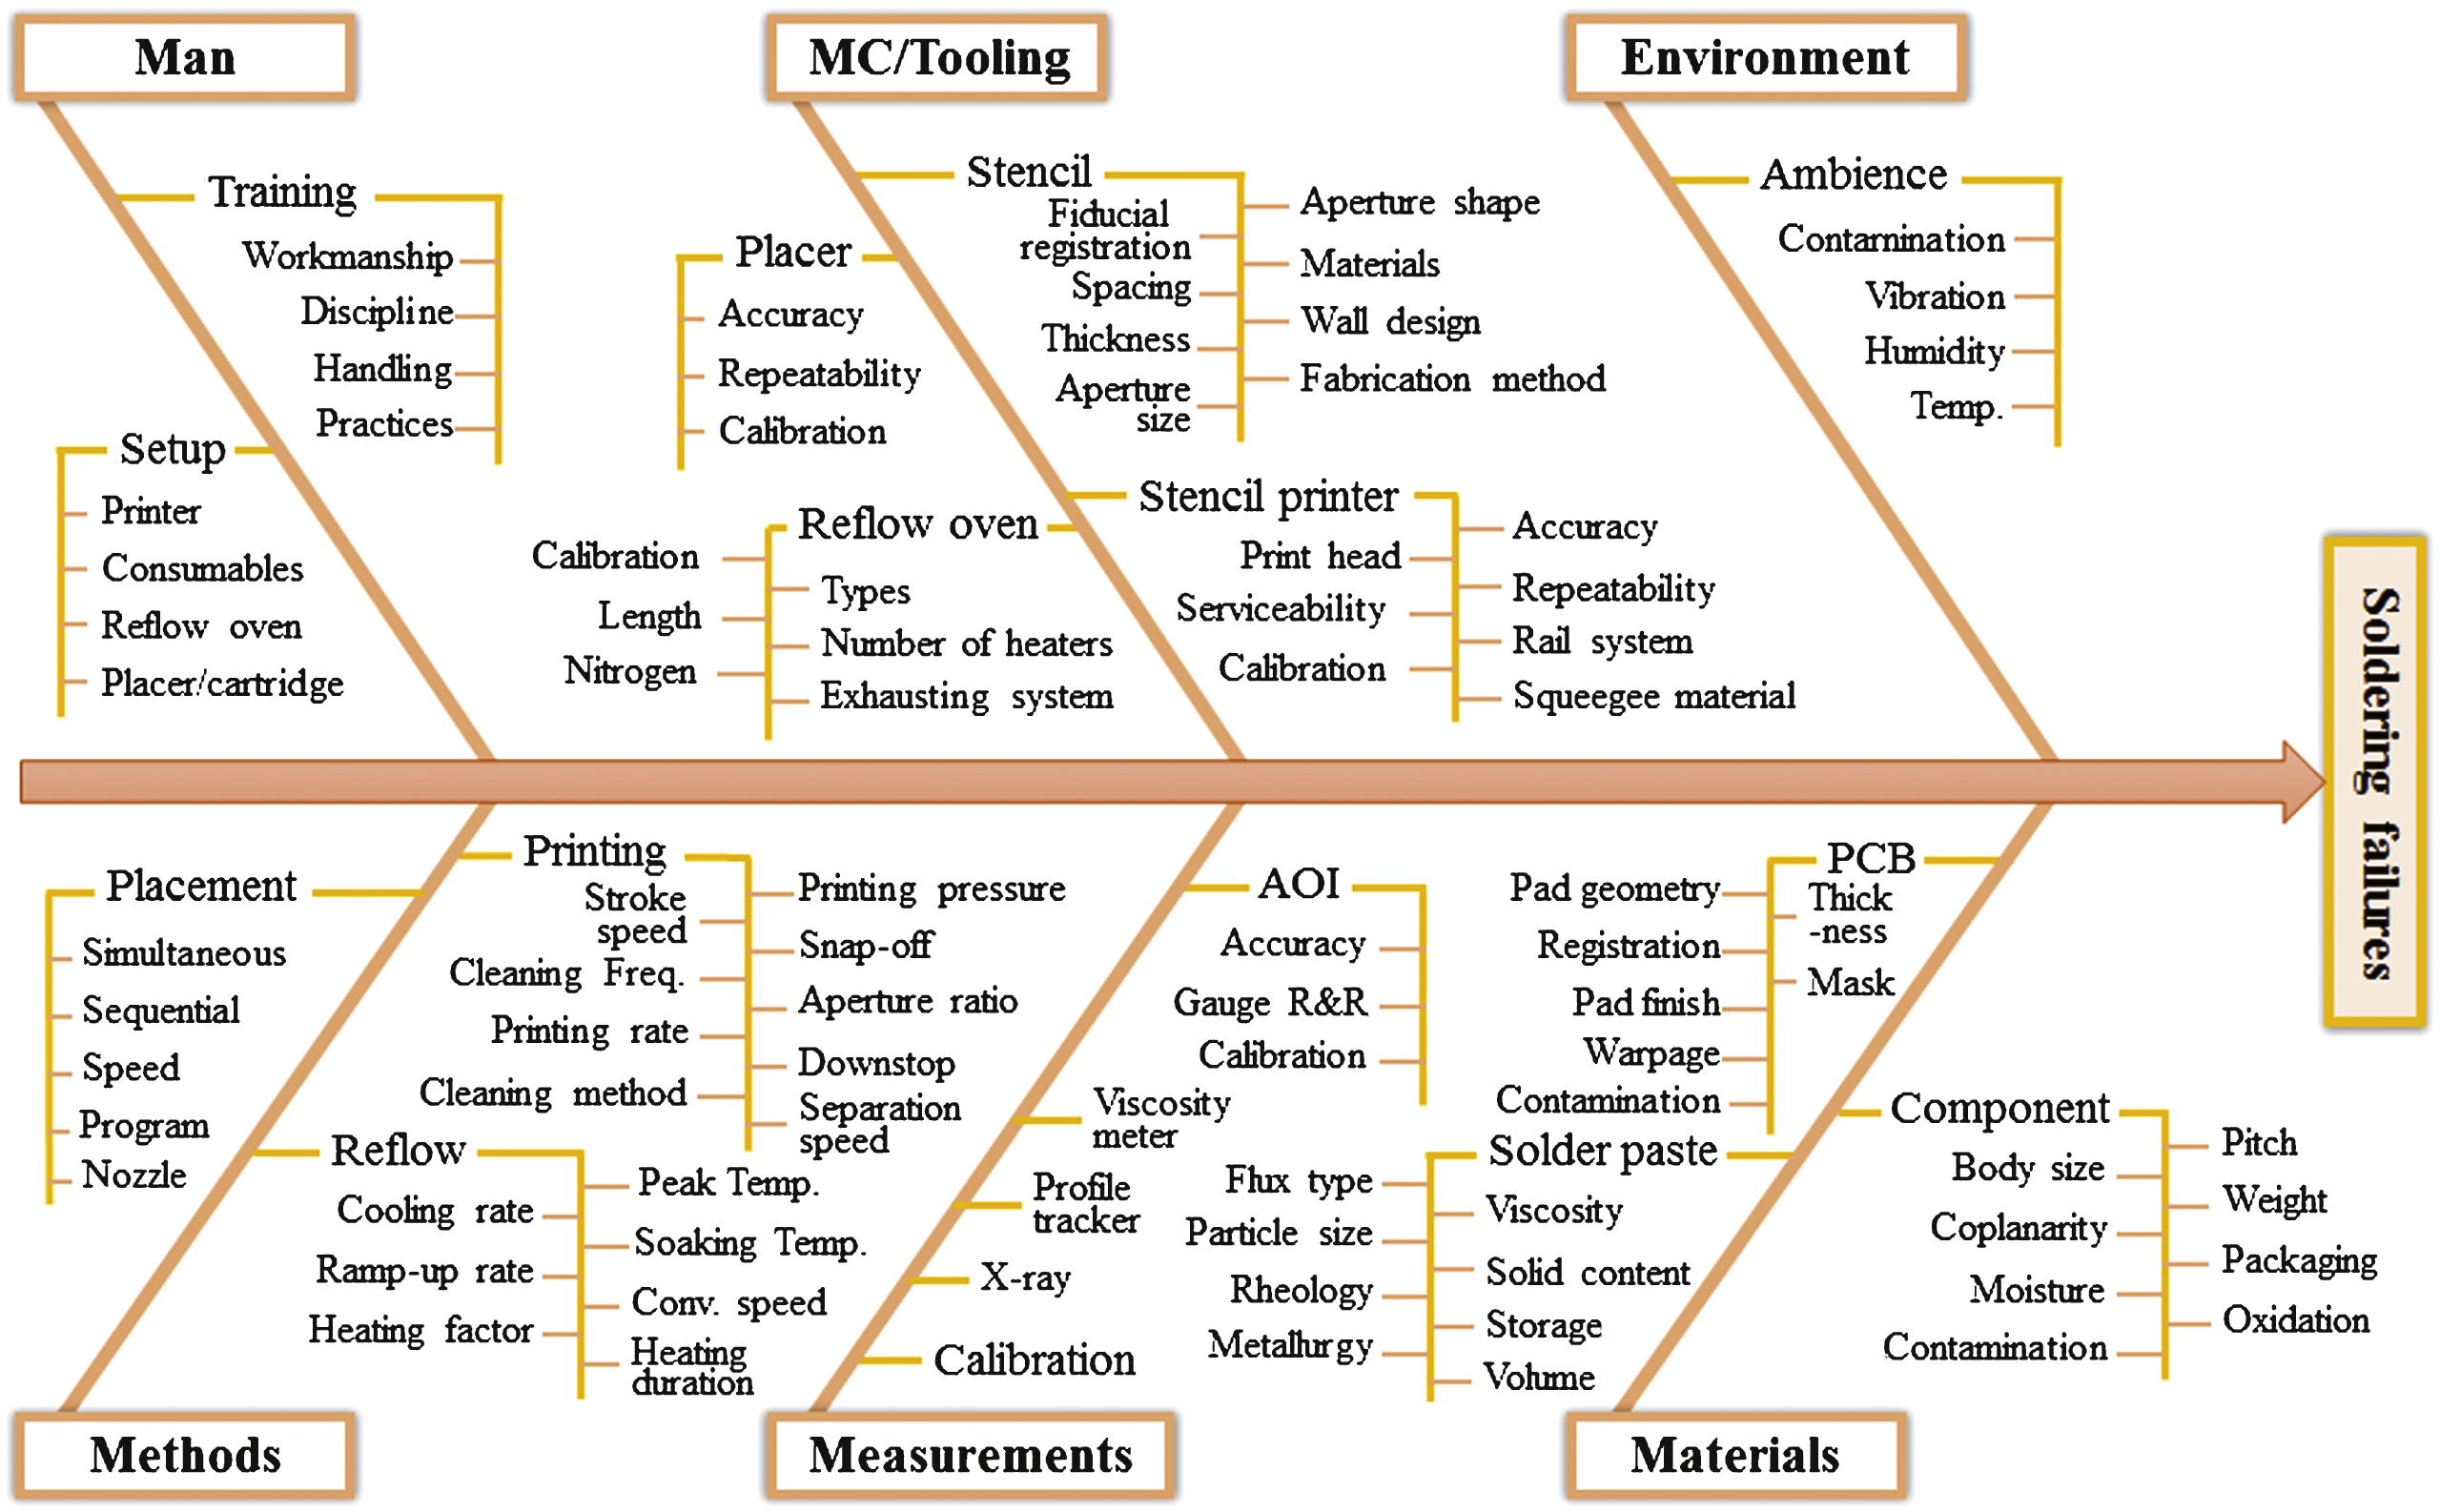 Fishbone diagram for fmea introduction to electrical wiring diagrams identification and risk assessment of soldering failure sources rh content iospress com fishbone diagram for eating disorders fishbone diagram format ccuart Choice Image